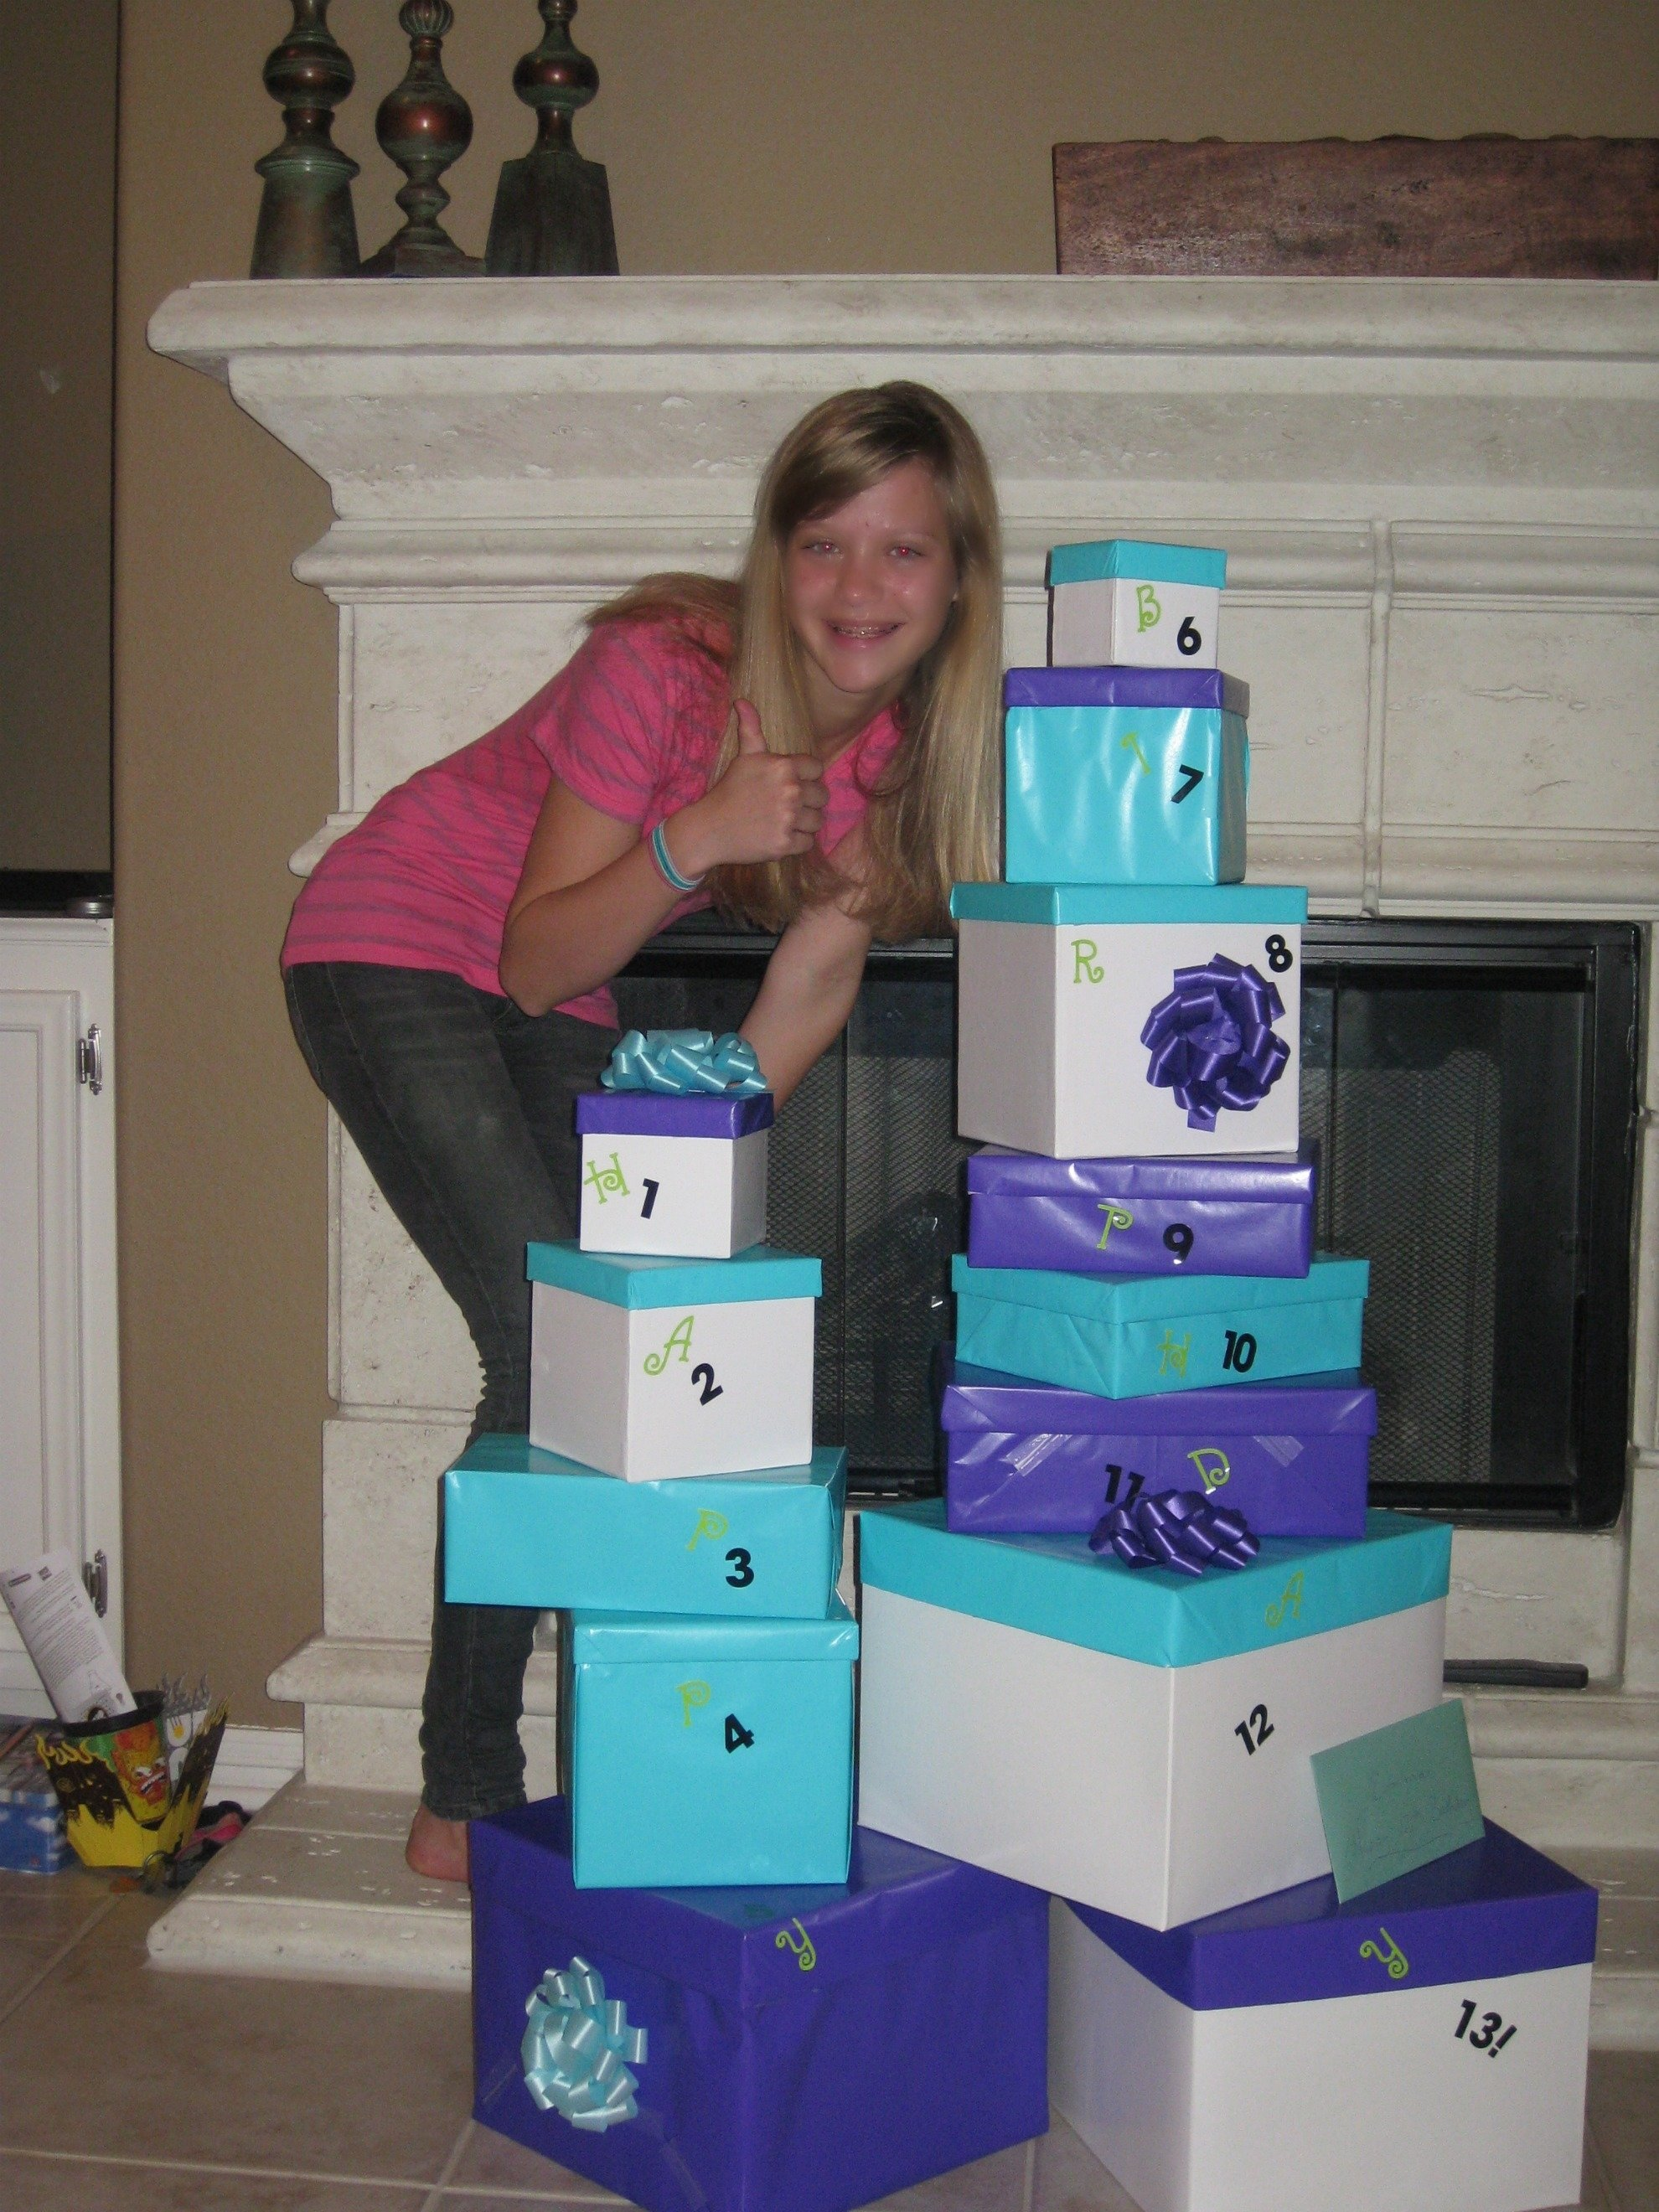 13 gifts for my girls 13th birthday! | nifty idea! | pinterest